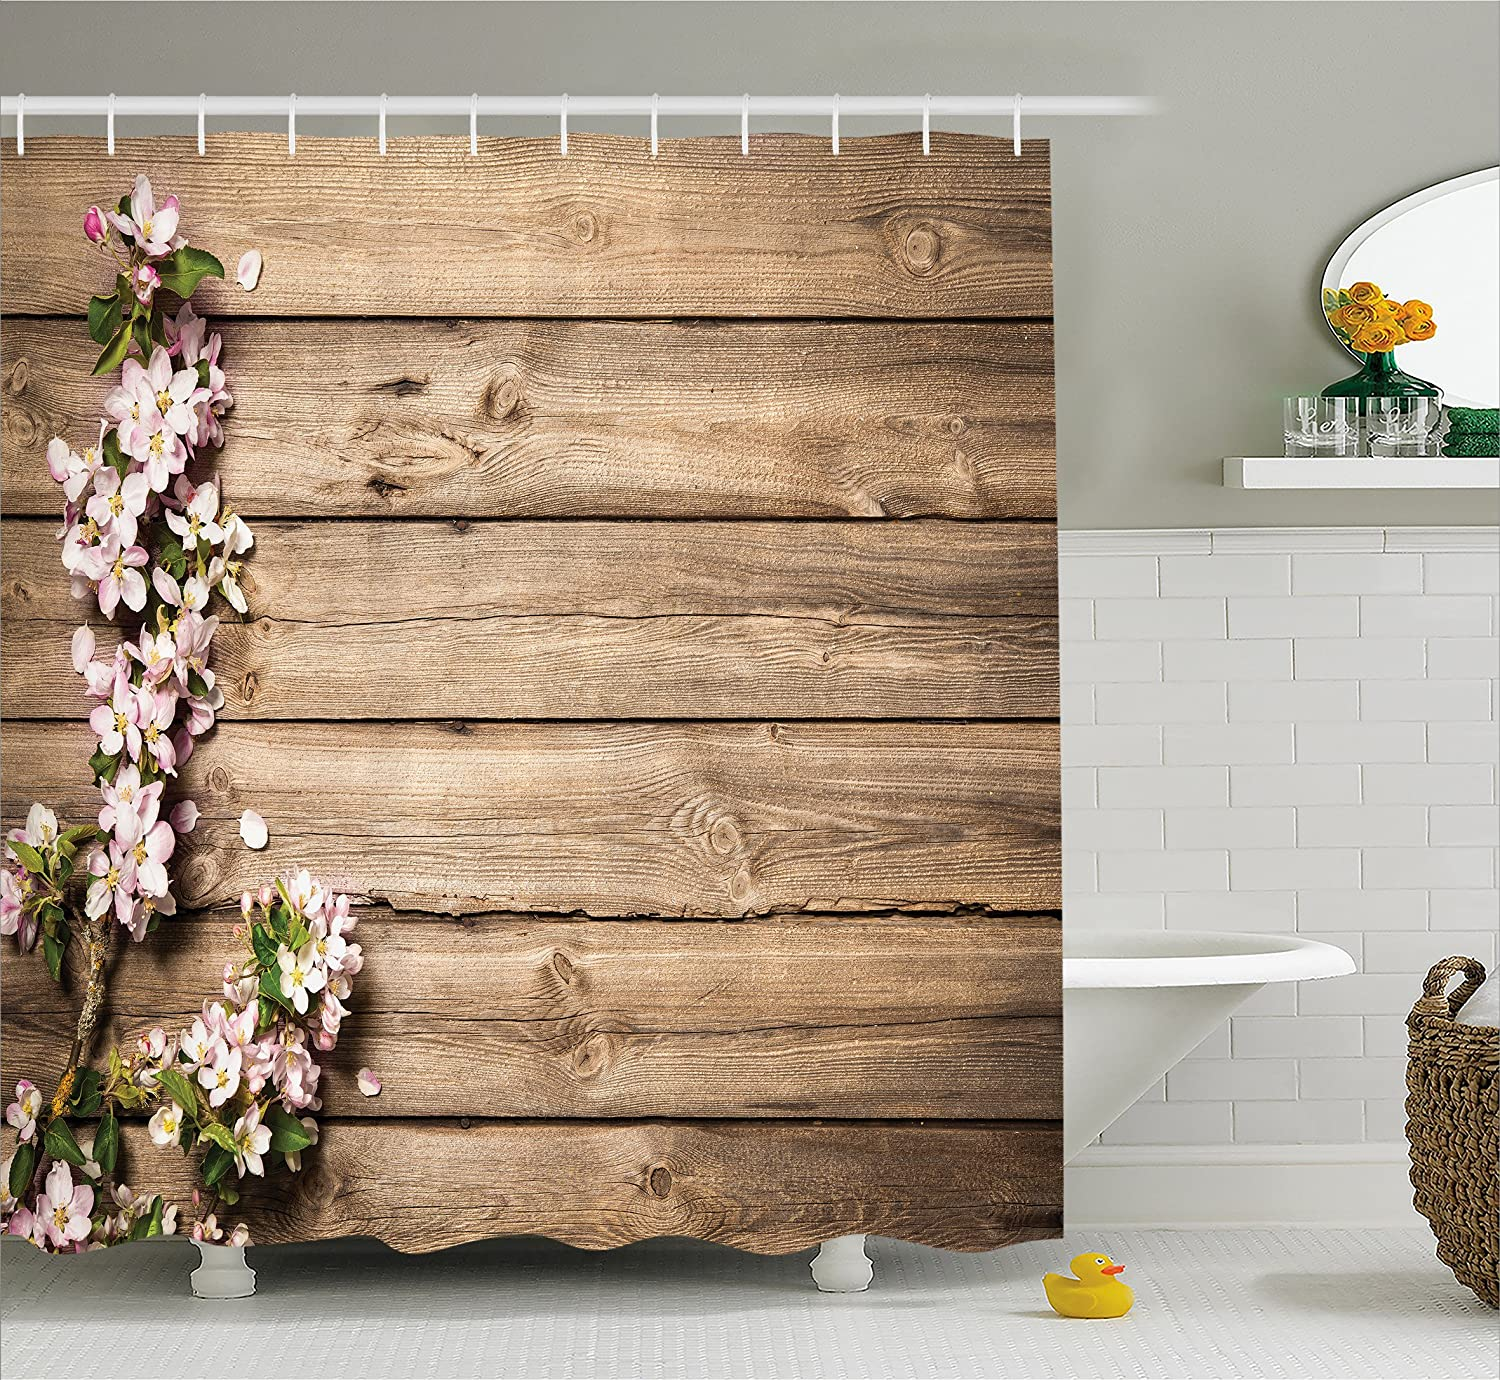 Ambesonne Rustic Home Decor Shower Curtain, Sweet Spring Flowering Branch on Weathered Wooden Blooming Orchard, Fabric Bathroom Decor Set with Hooks, 70 Inches, Pink Brown Green